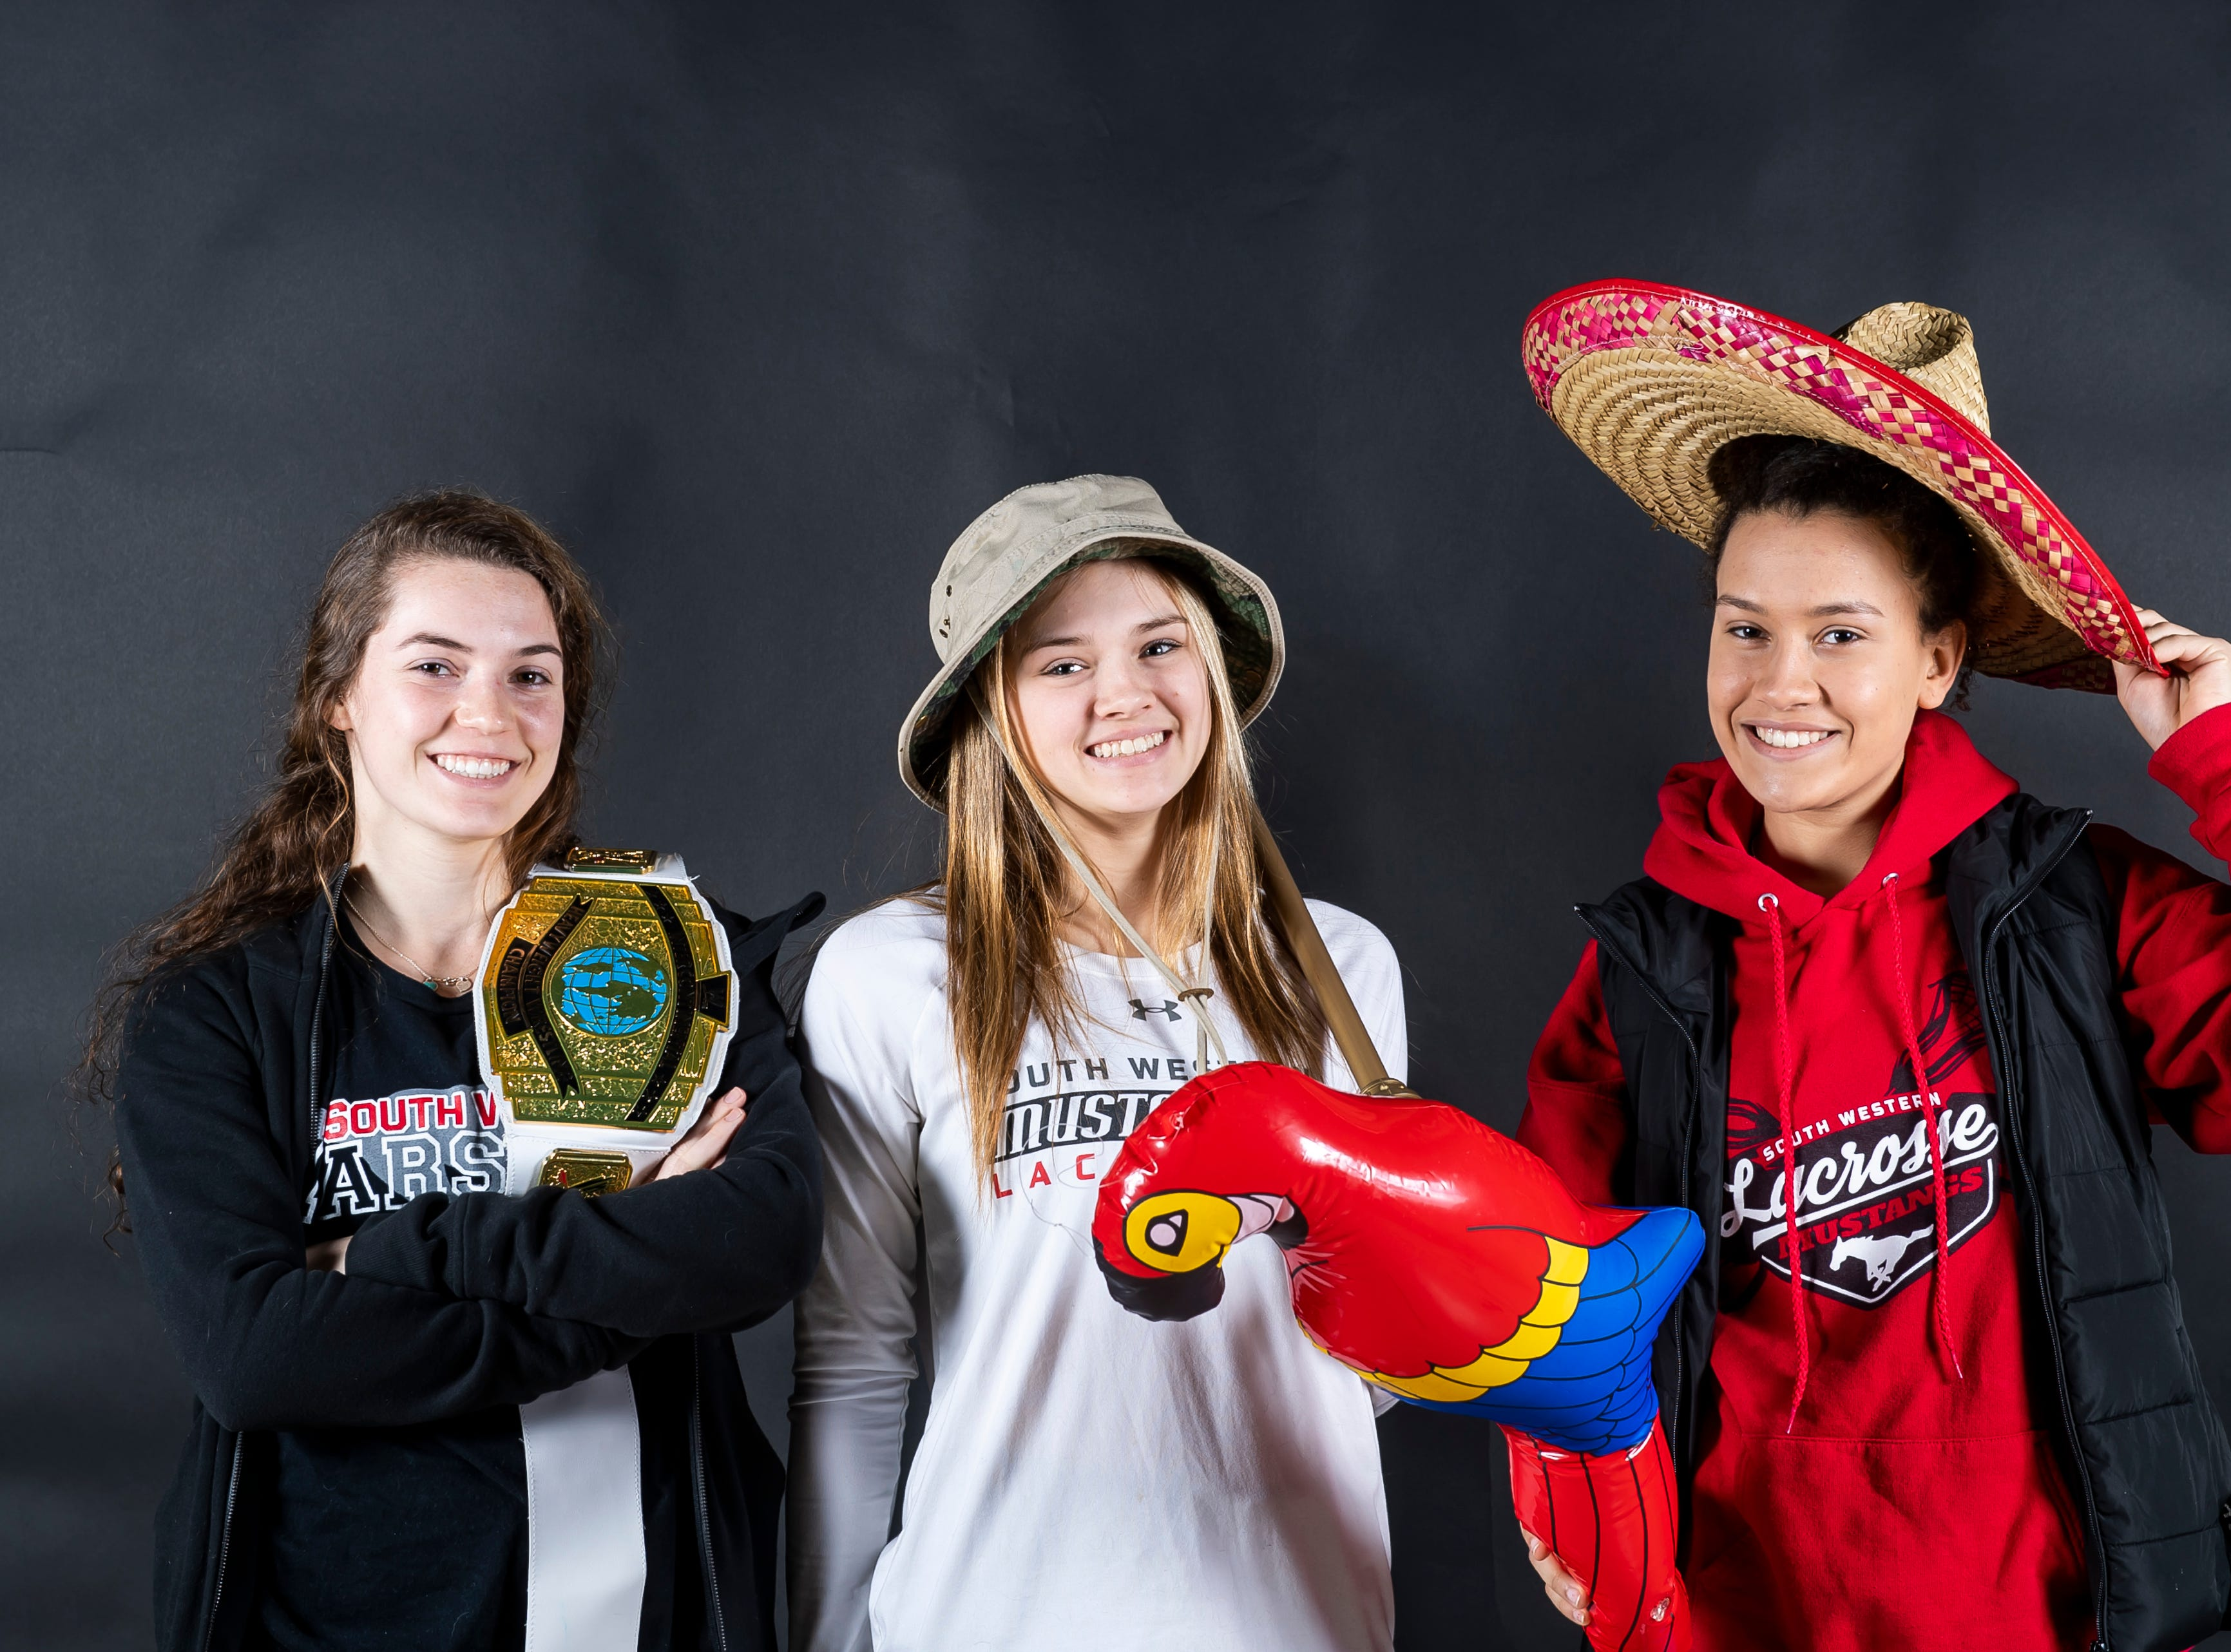 (From left) South Western lacrosse players Jordan Gertz, Caitlyn Coates and Sophie Mace strike a pose in the GameTimePA photo booth during spring sports media day in York Sunday, March 10, 2019.